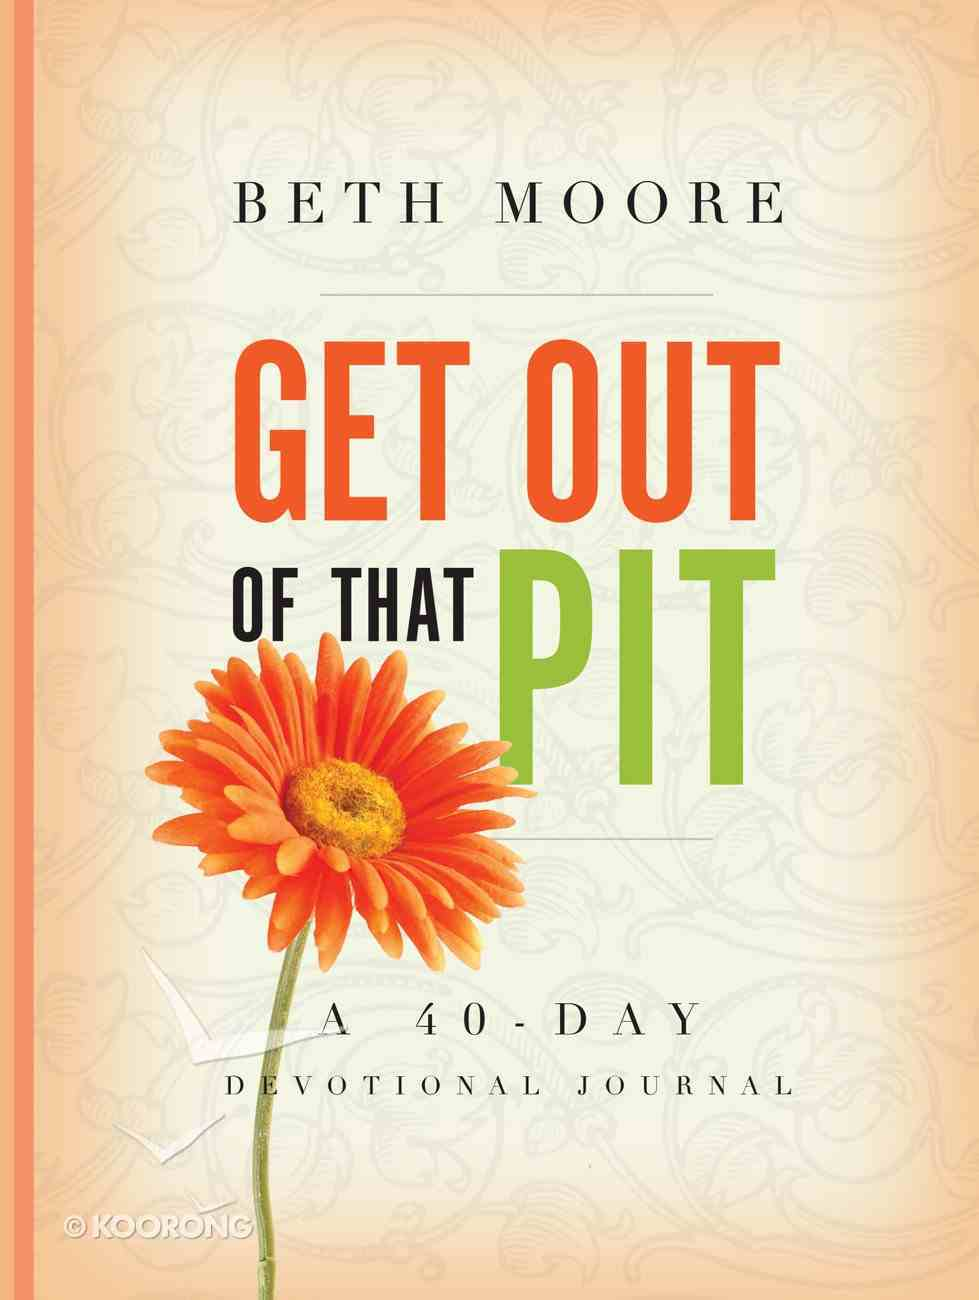 Get Out of That Pit (Devotional Journal) eBook